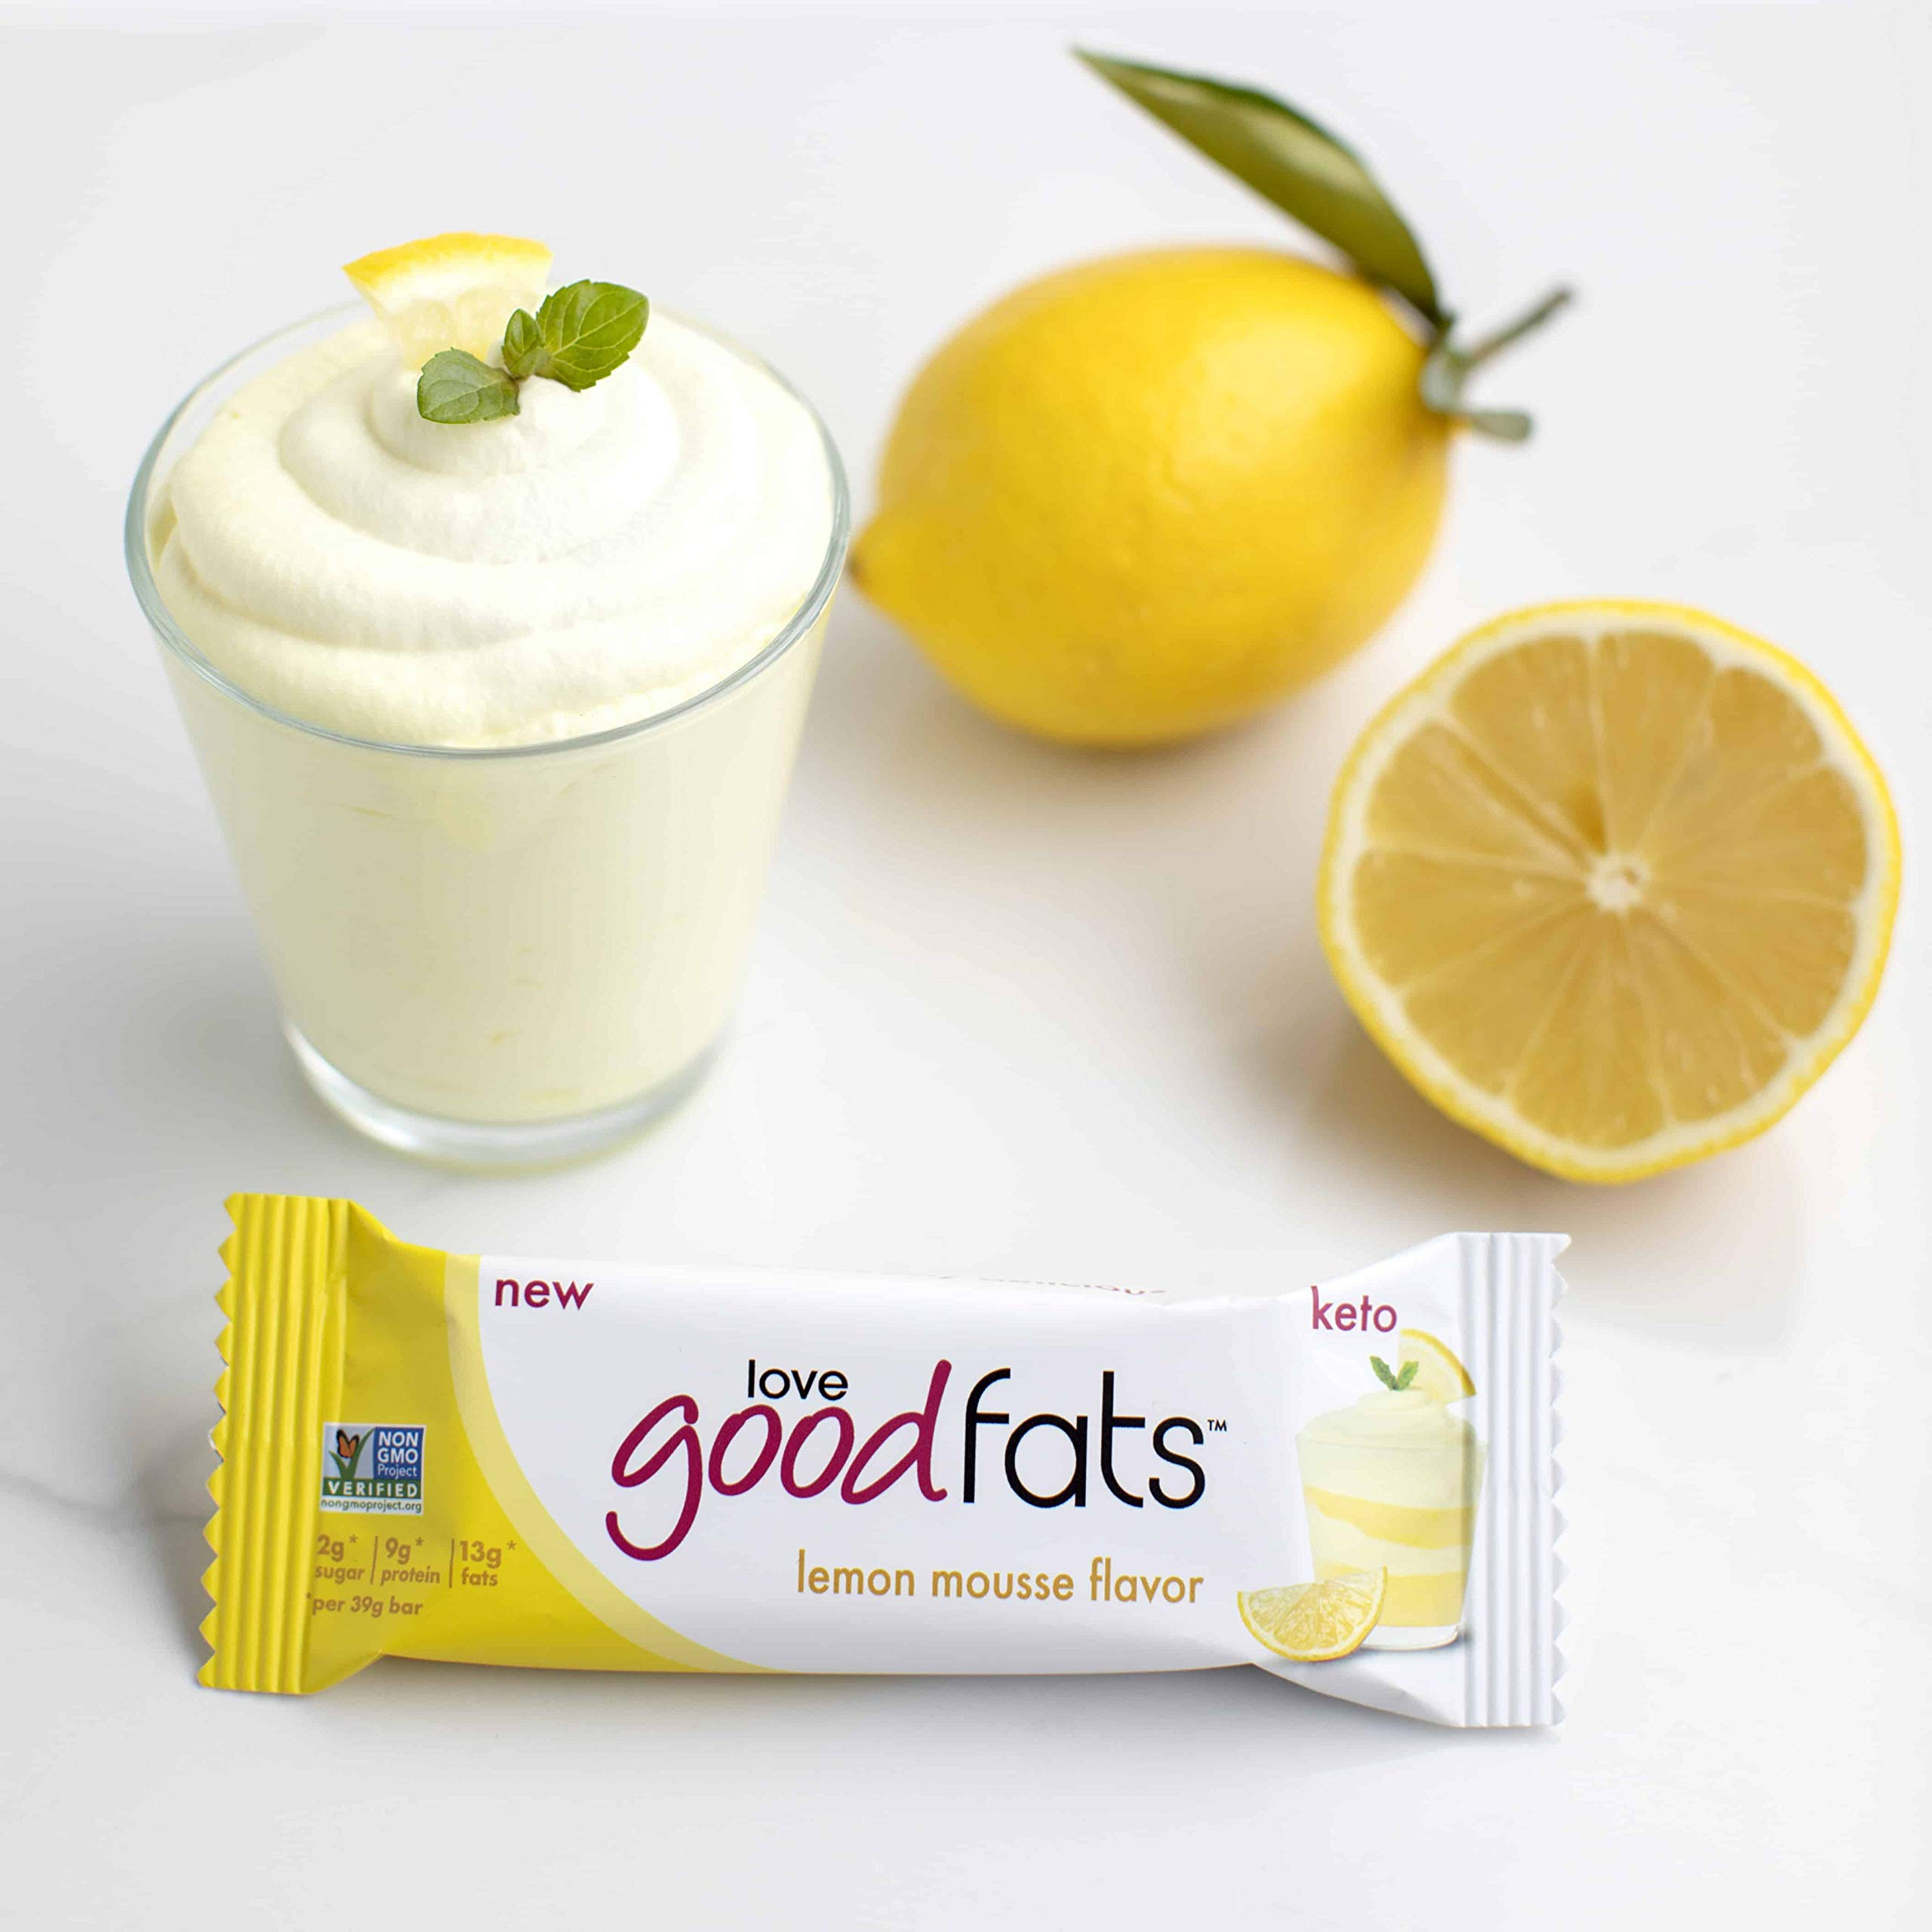 Love Good Fats - Lemon Mousse Keto Bars - Keto Friendly Protein Bars with Natural Ingredients - Gluten-Free, Low Carb Ketogenic Bar with 9g of Protein and Coconut Oil - 1.32 oz Bars (12 Count) by love good fats